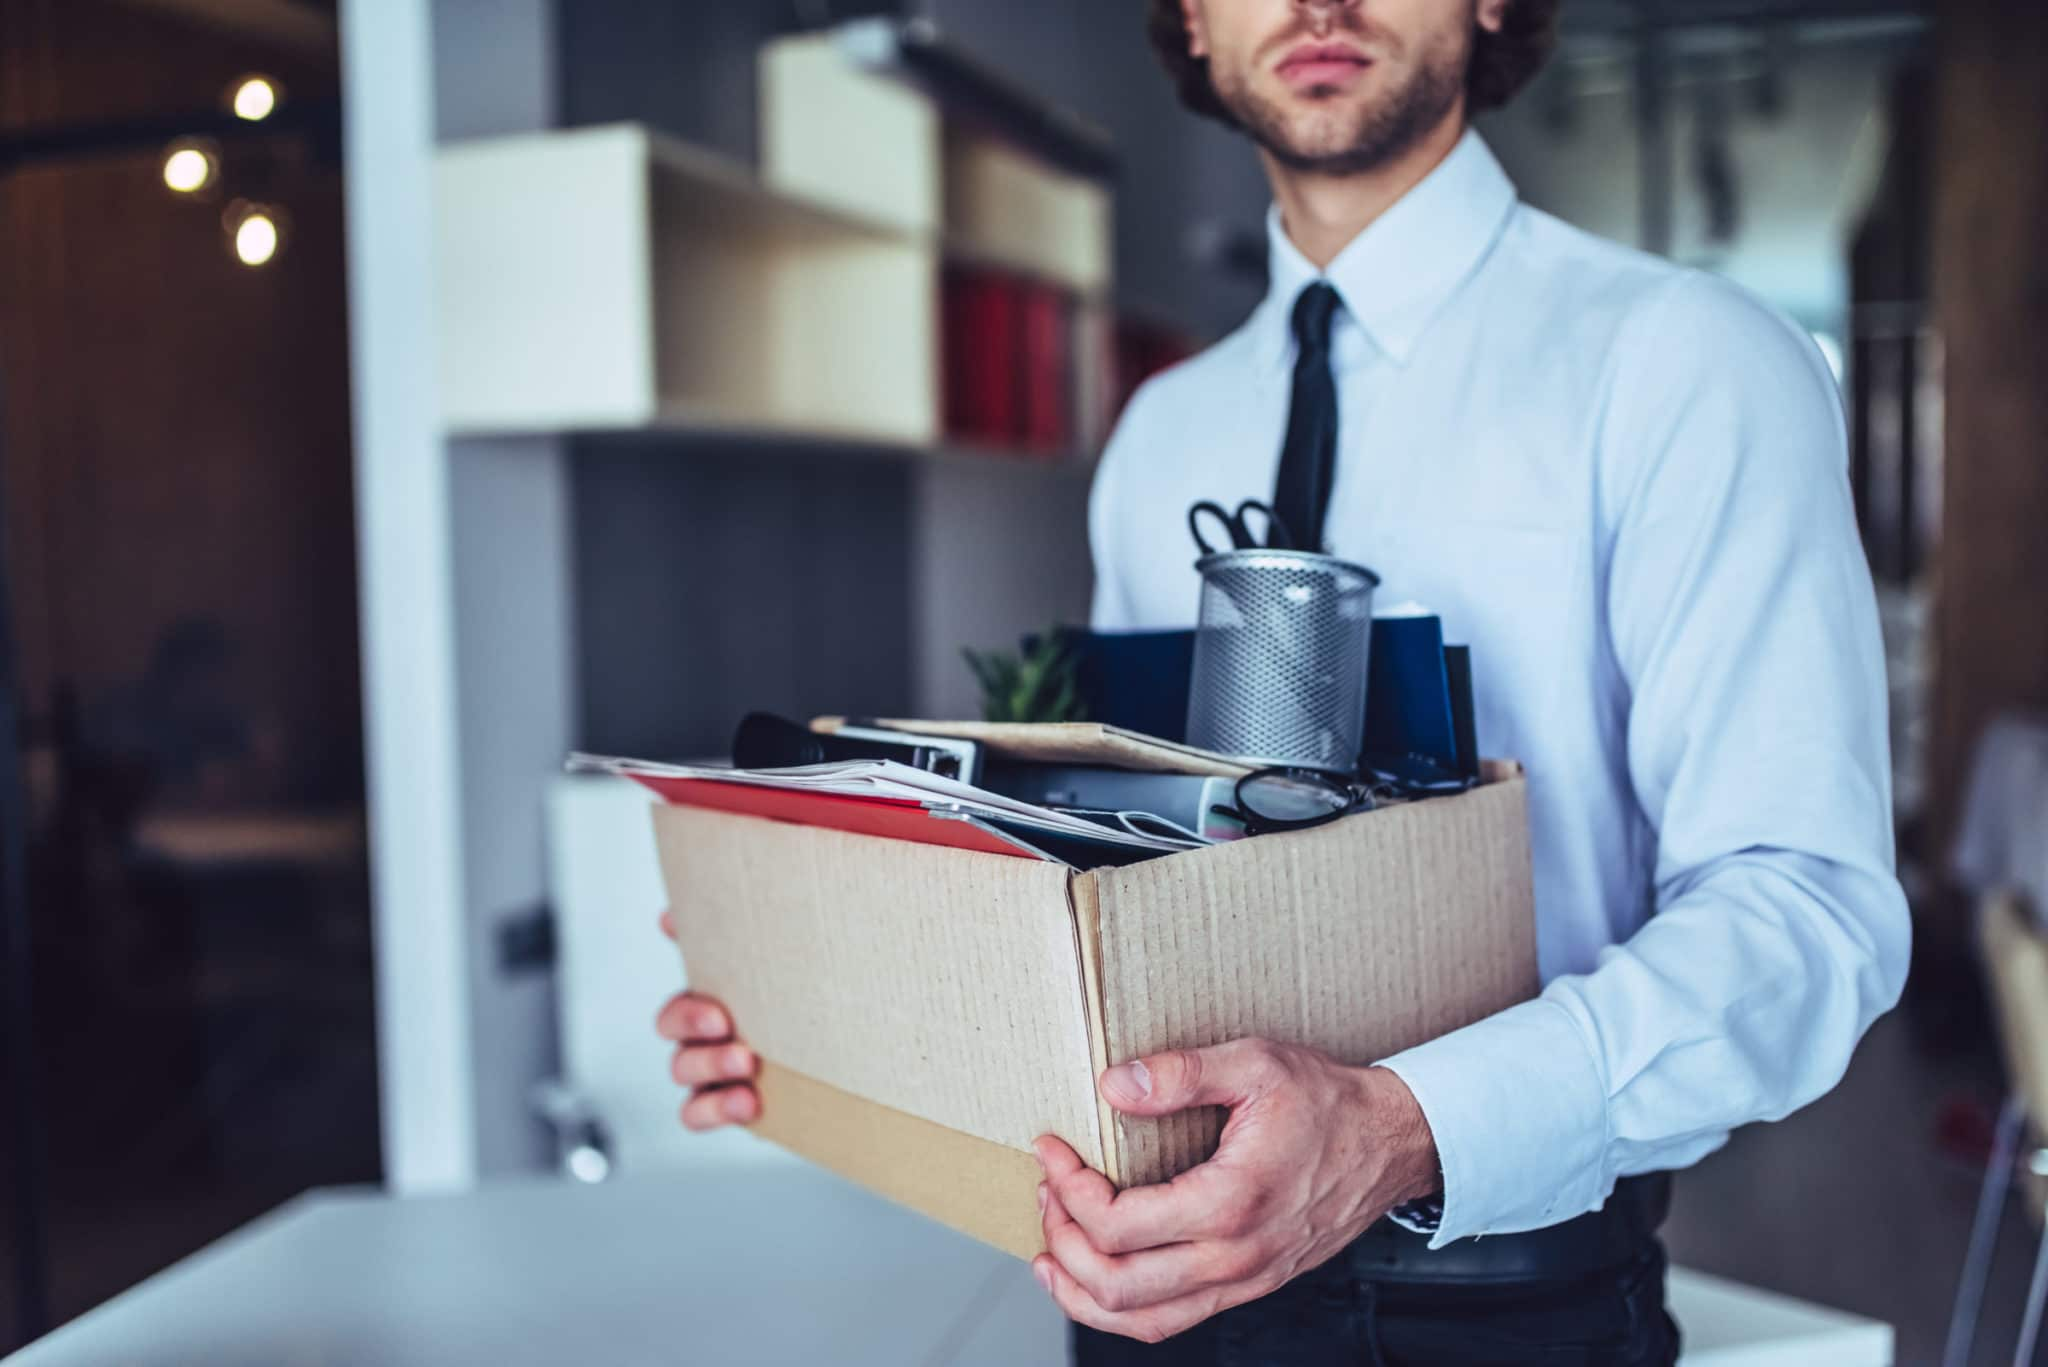 termination, fired, job, constructive dismissal, just cause, reasonable notice, severance, termination packages, pay, seasonal, seasonal, task specific, pay in lieu, recession, duty to mitigate, contract